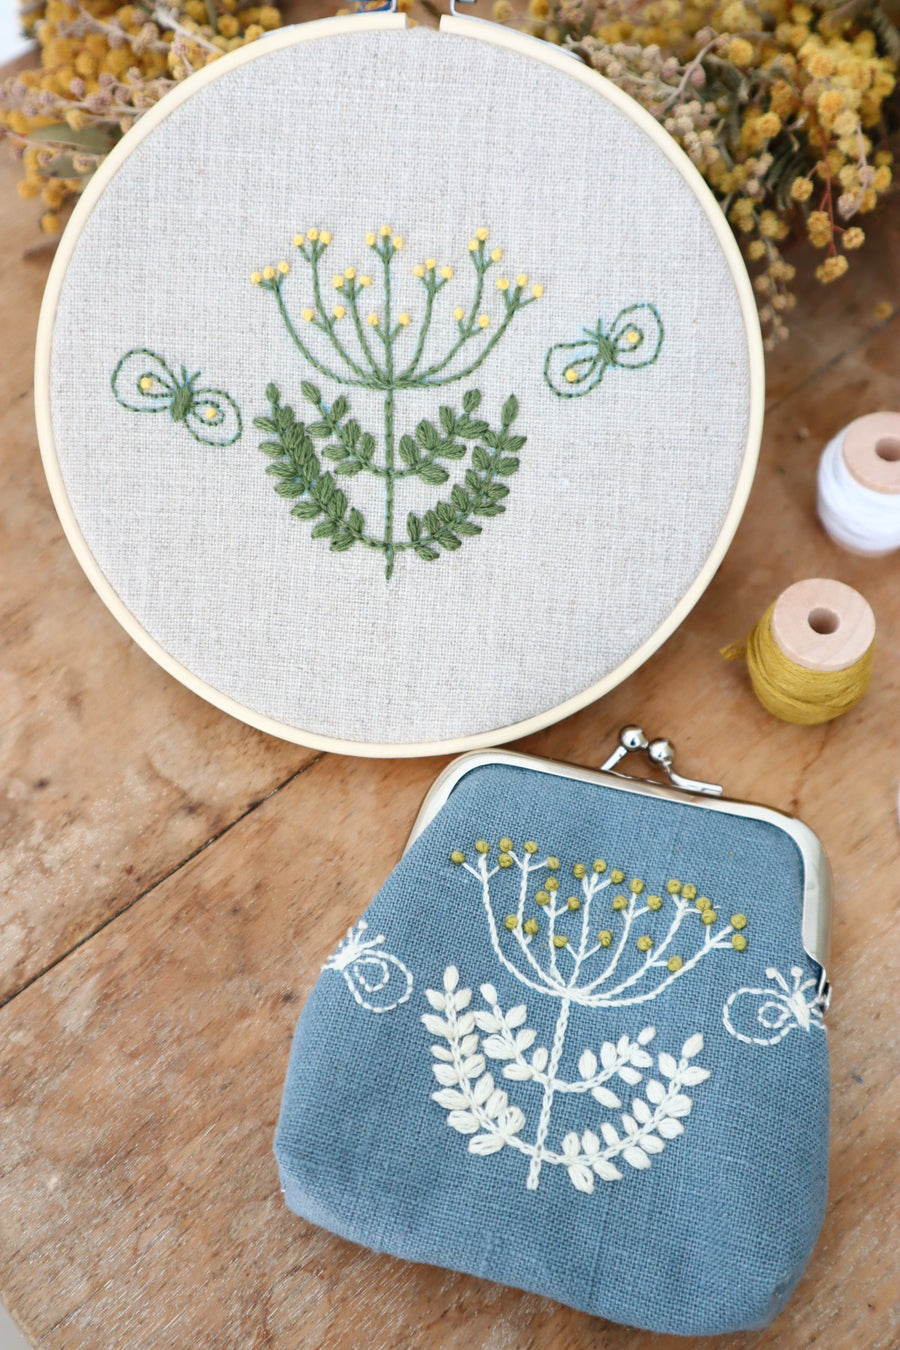 Learn to embroider - Yellow Flower Embroidery